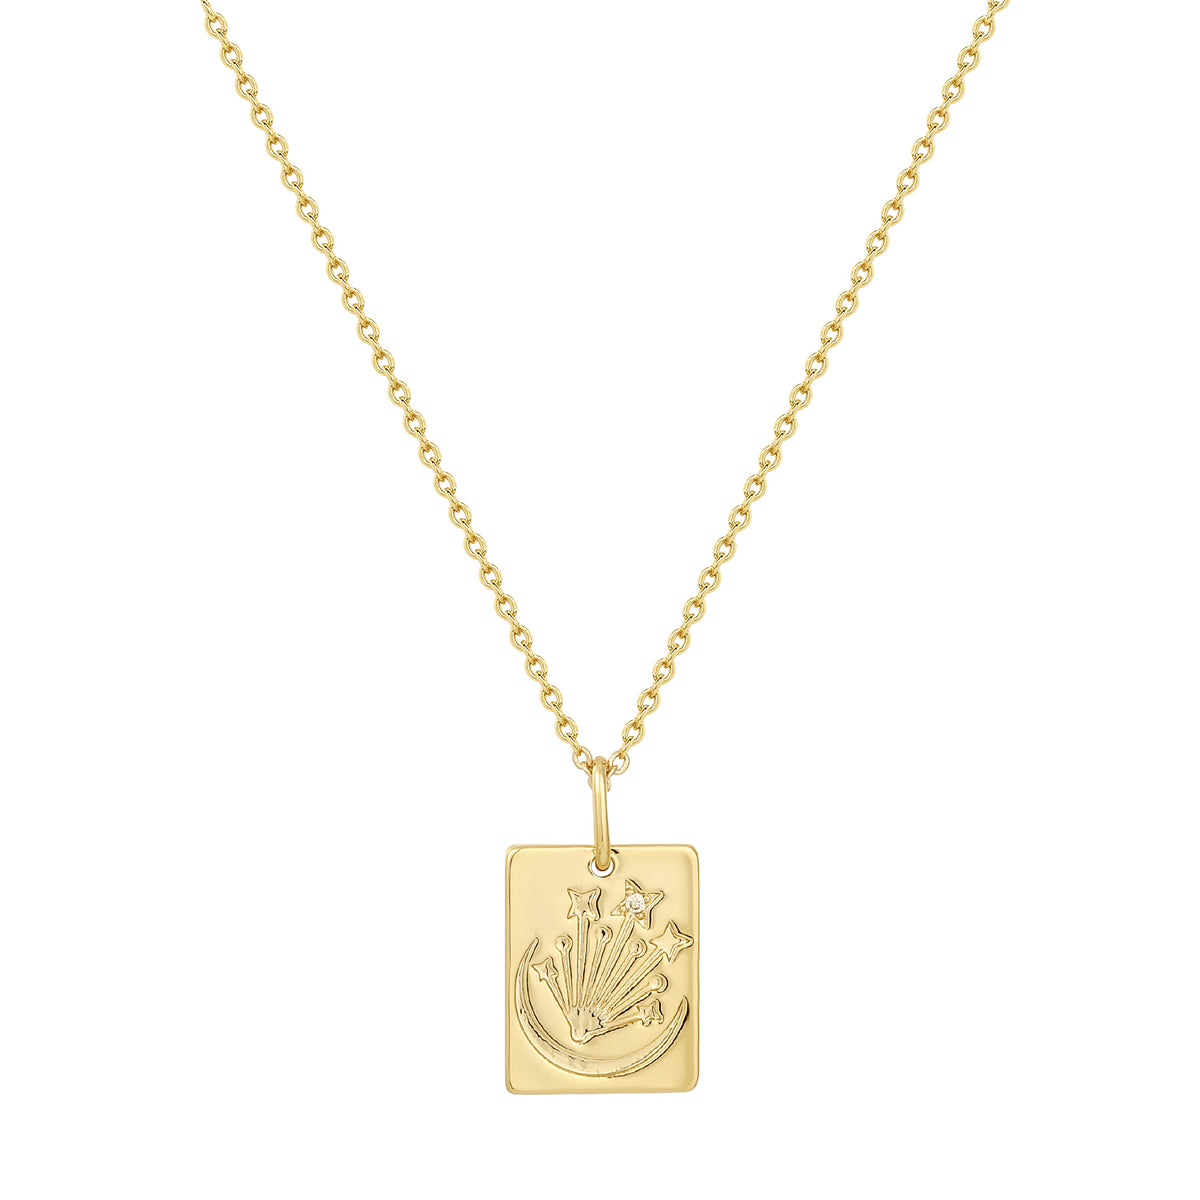 Wish Pendants | Mystery, Energy & Peace Pendant | White CZ | 14K Gold Plated 925 Silver